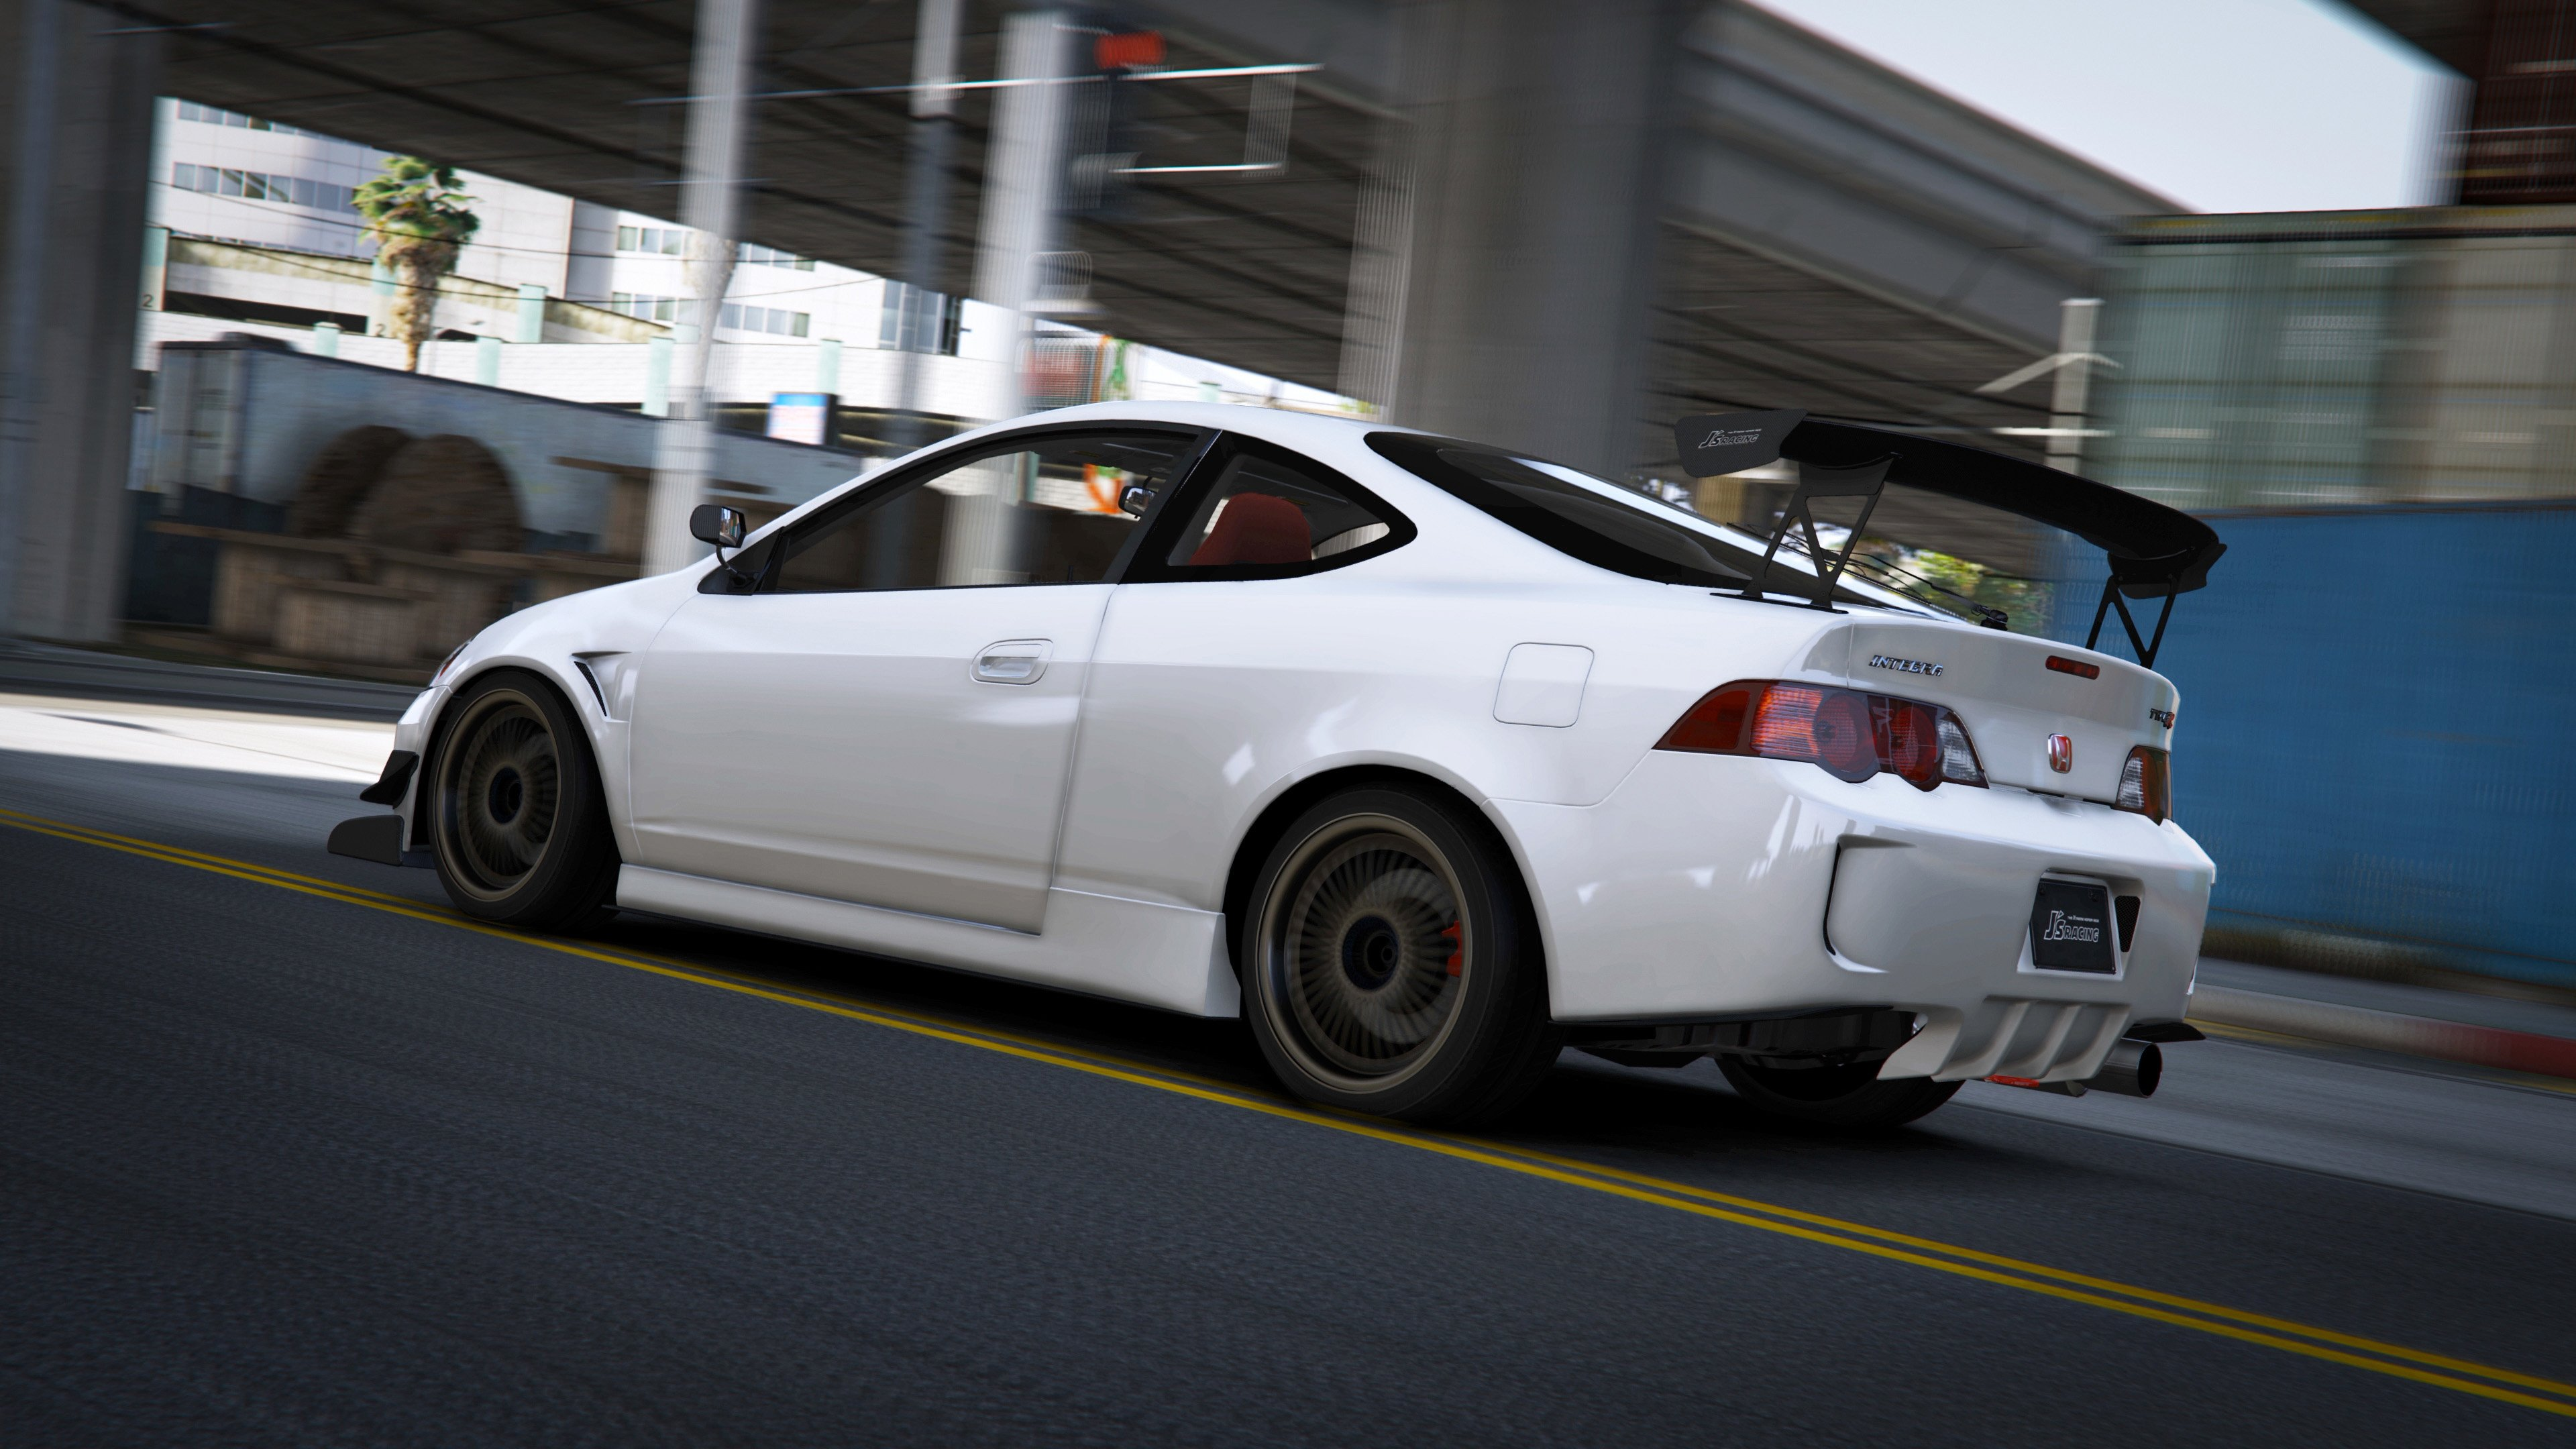 Maxresdefault besides Maxresdefault additionally Db Ba A also Maxresdefault furthermore Acura Rsx Rocket Bunny. on acura rsx type r